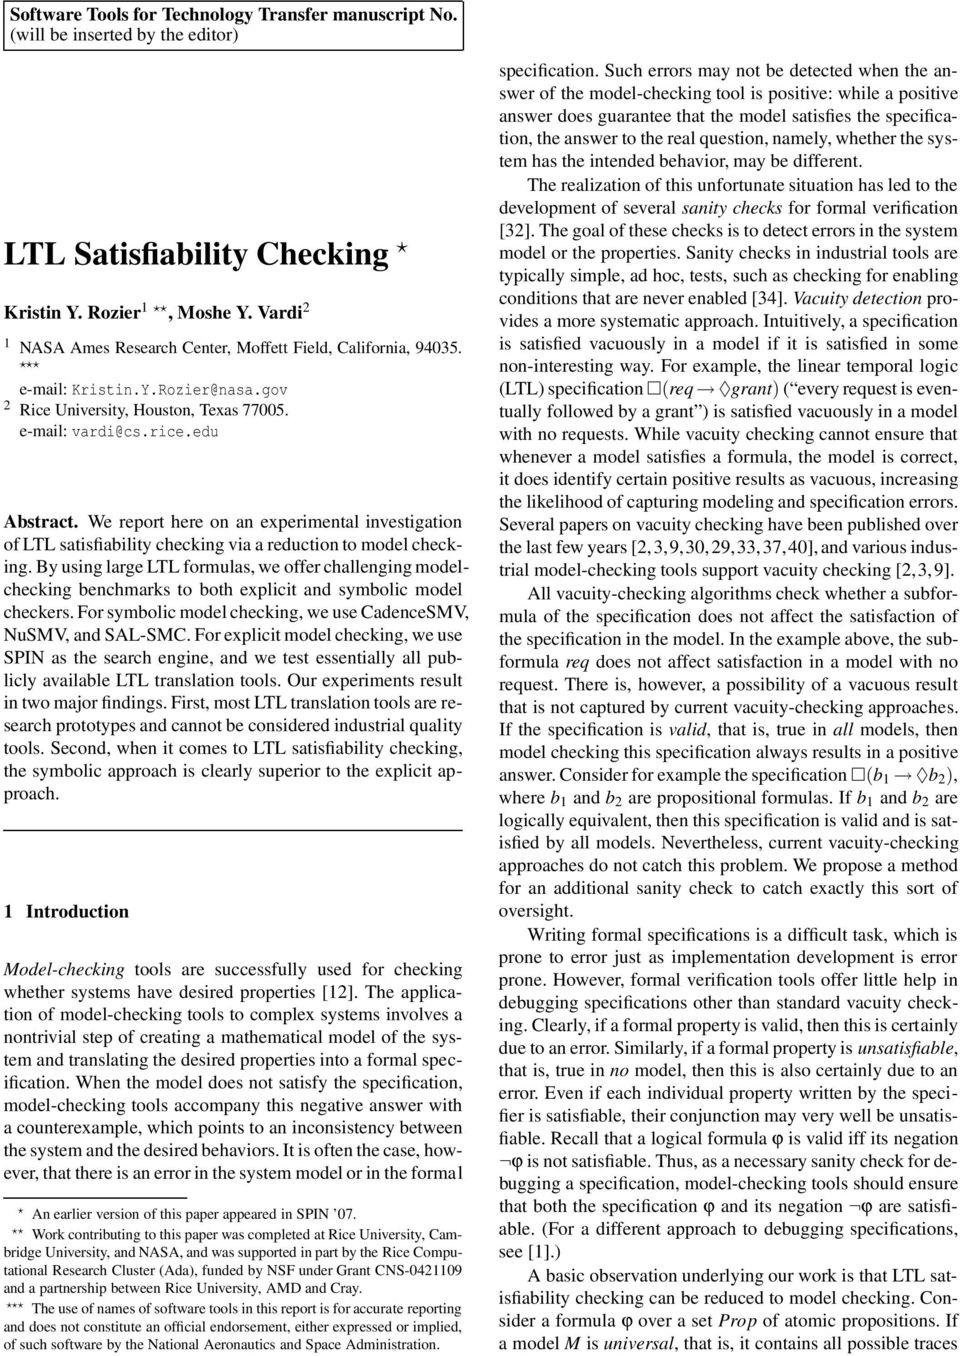 We report here on an experimental investigation of LTL satisfiability checking via a reduction to model checking.